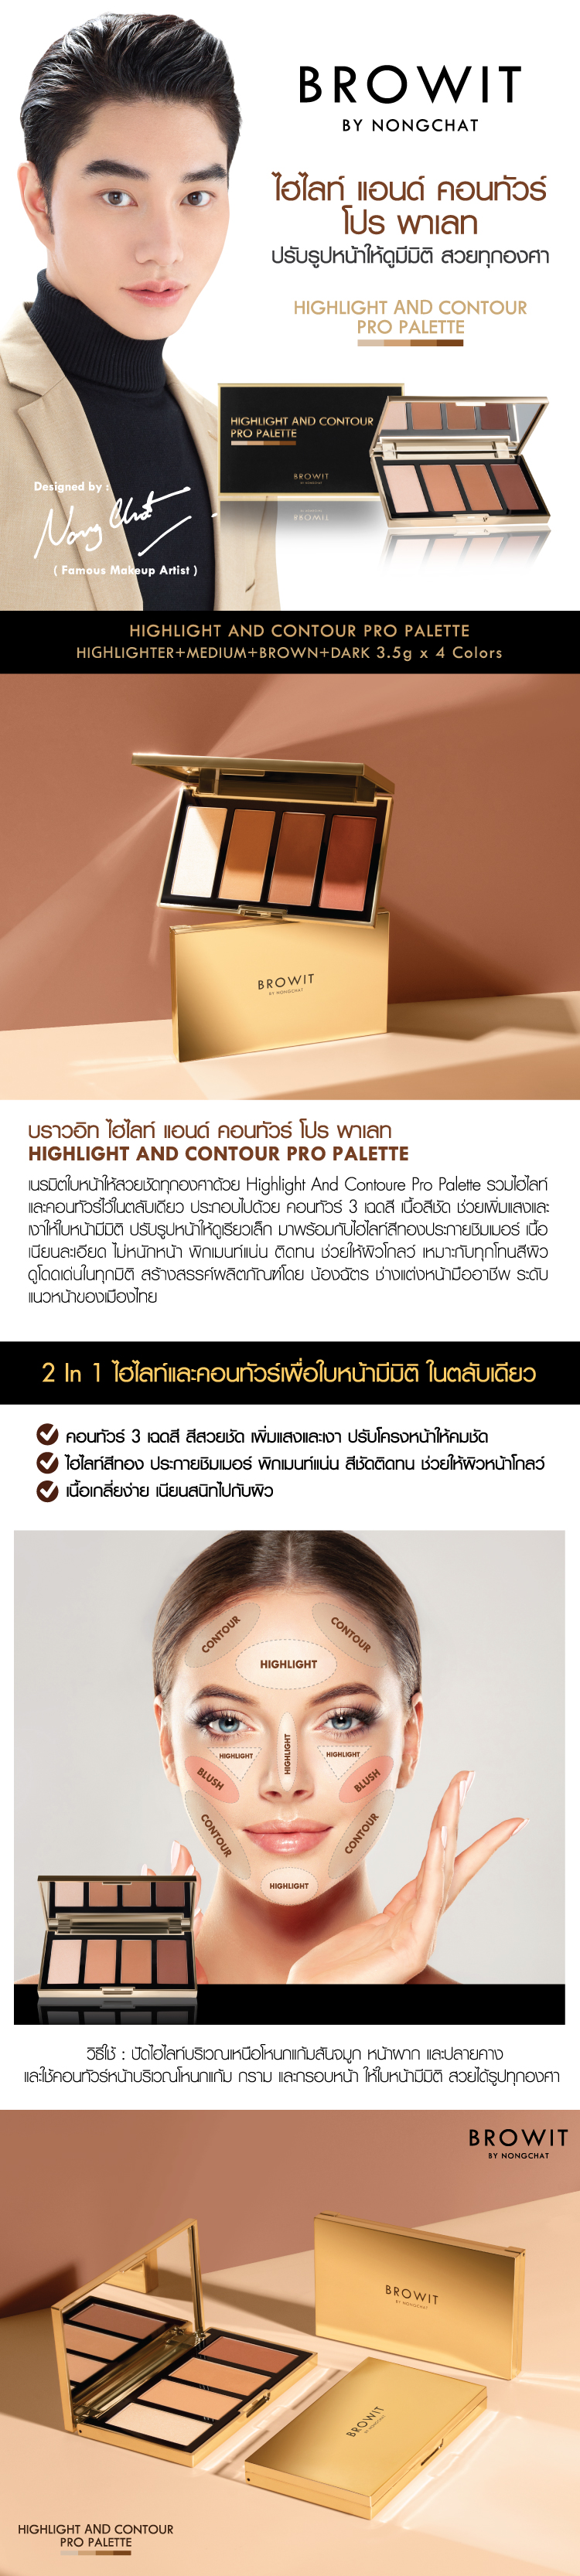 Product-Details-Browit-HIGHLIGHT-AND-CON